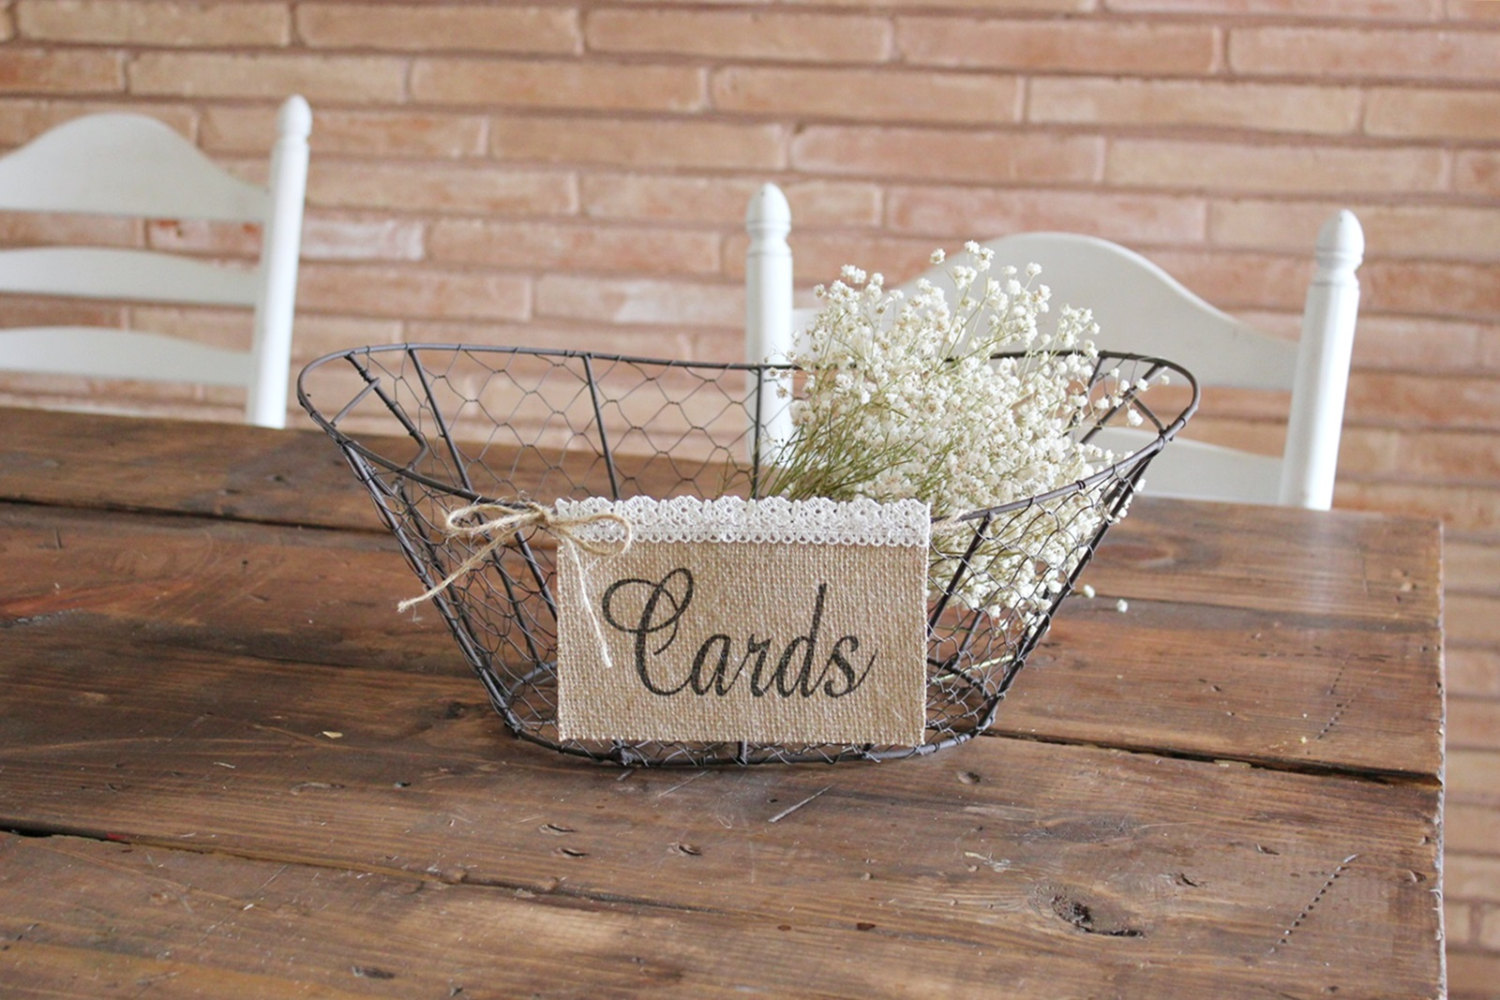 cards sign burlap for wire basket | 50 Best Burlap Wedding Ideas | via http://emmalinebride.com/decor/burlap-wedding-ideas/